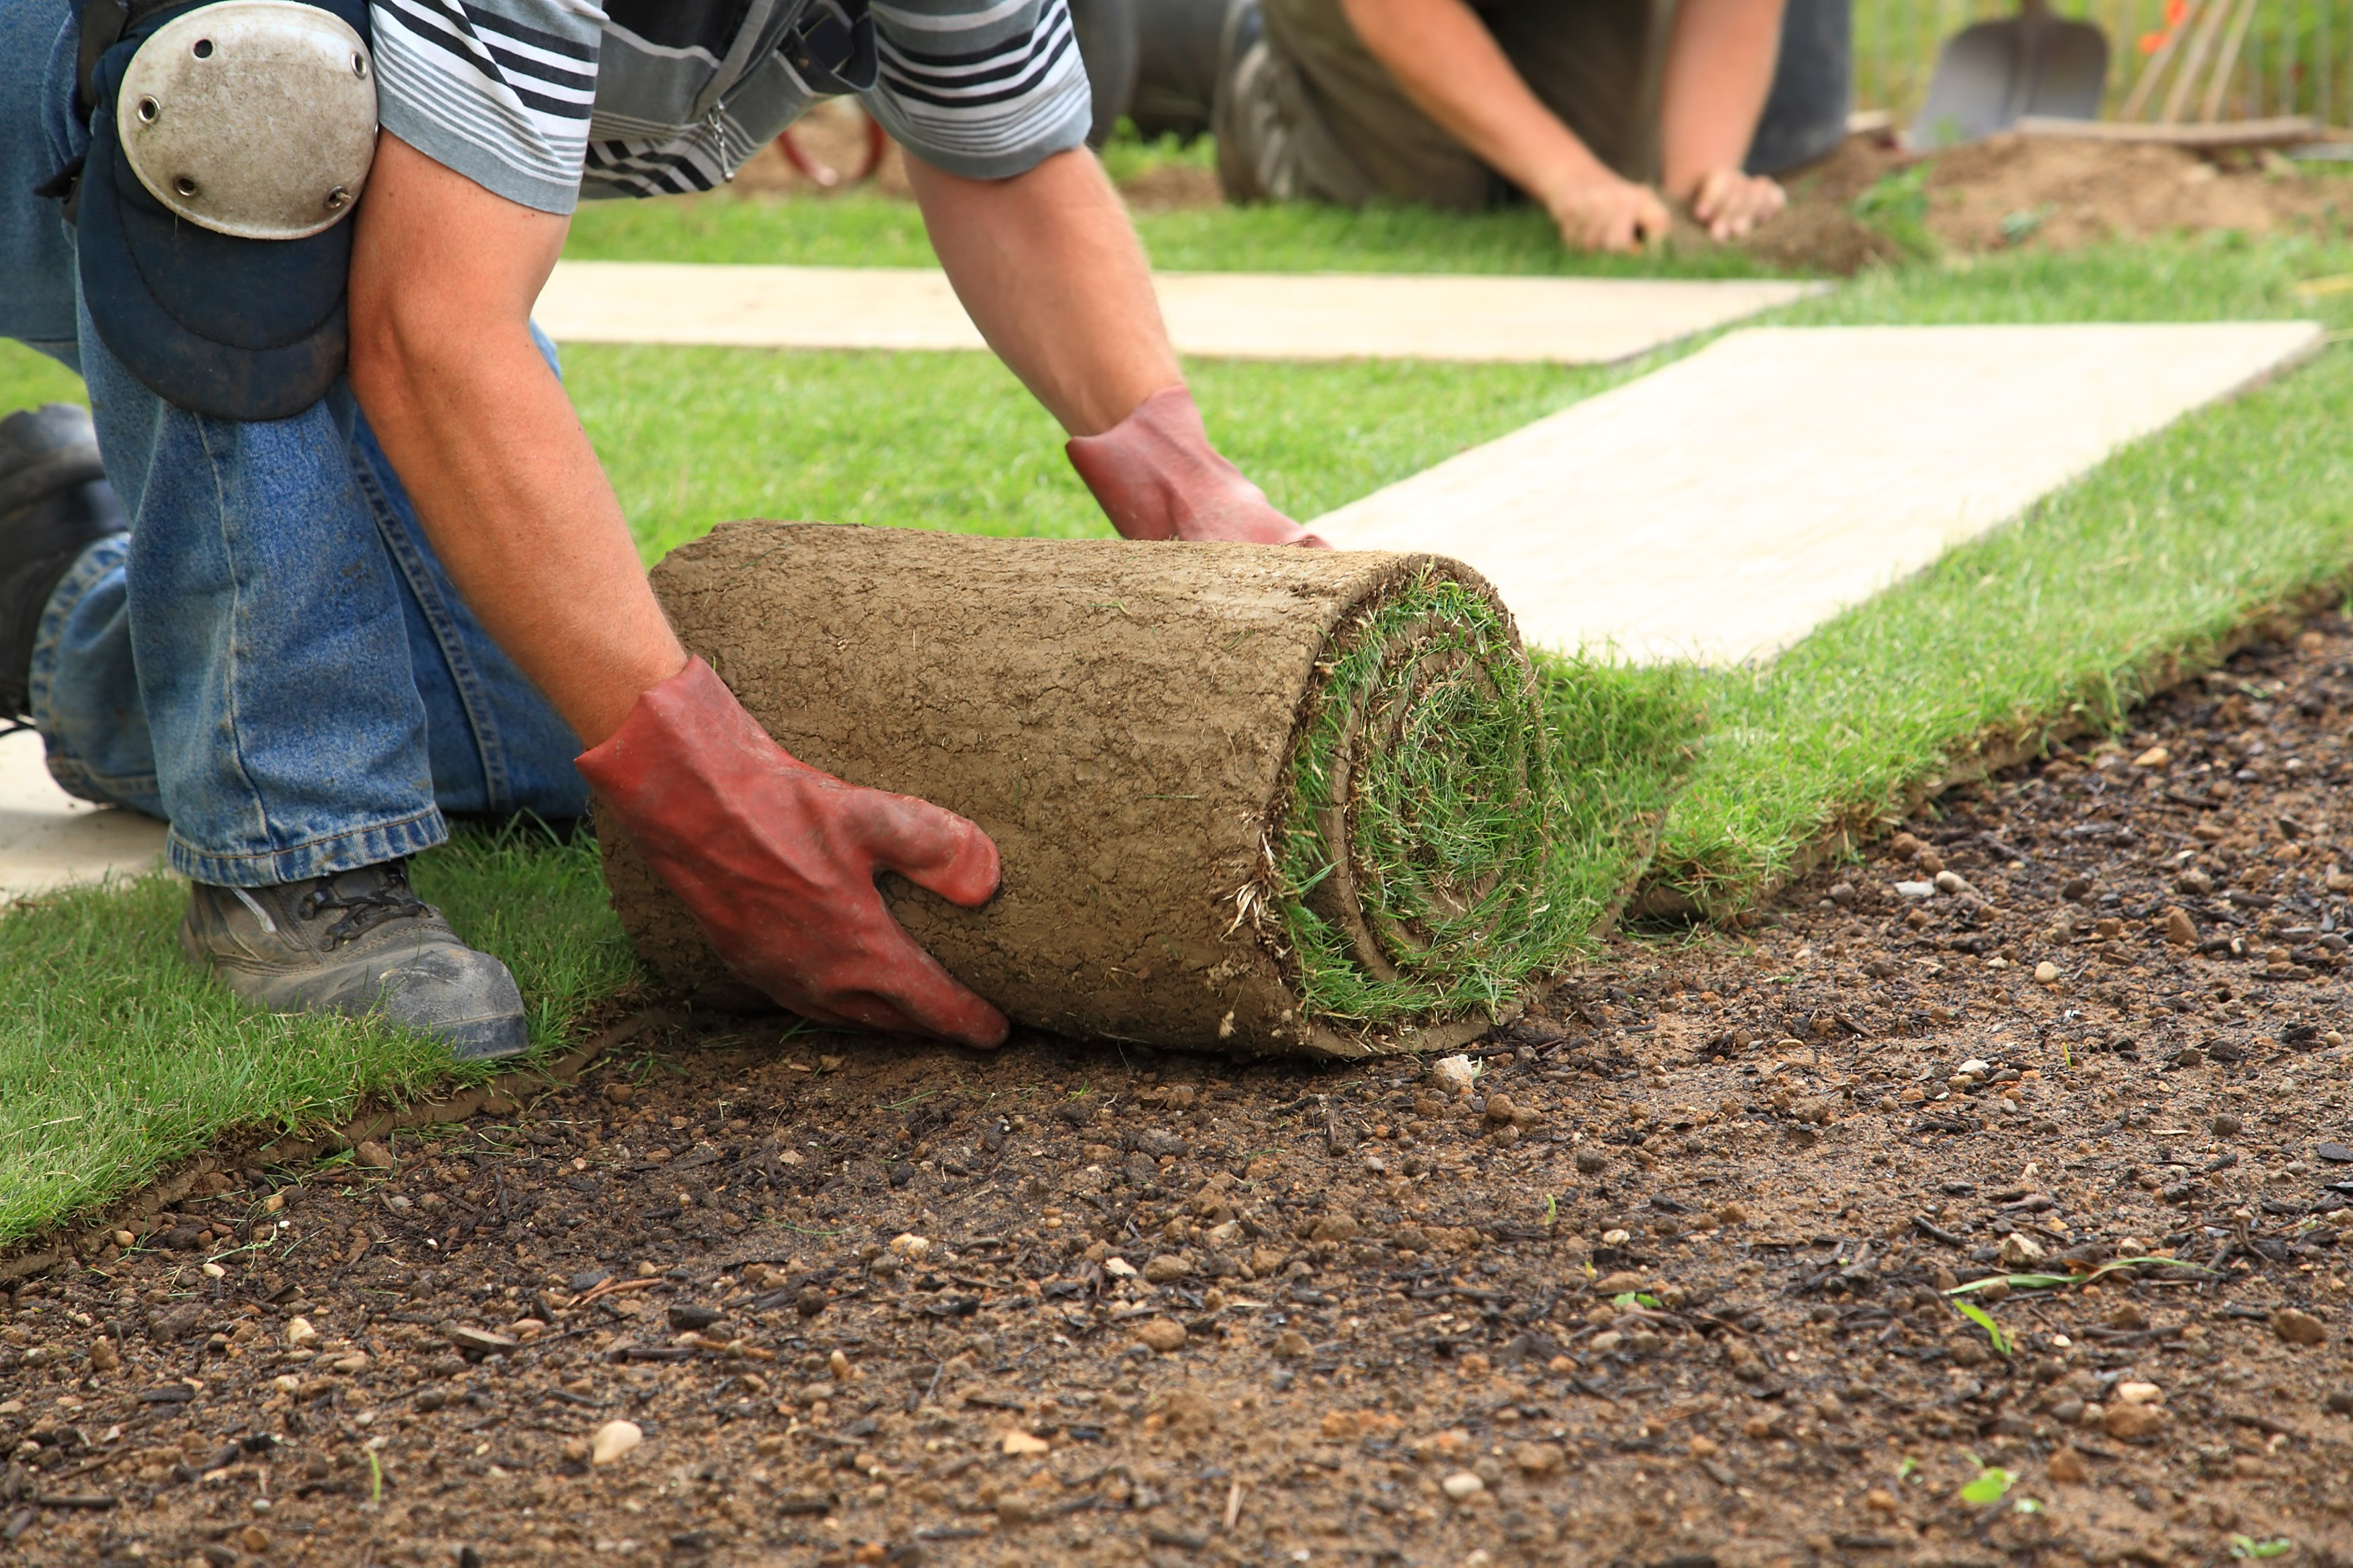 photodune-1198069-laying-sod-for-new-lawn-l